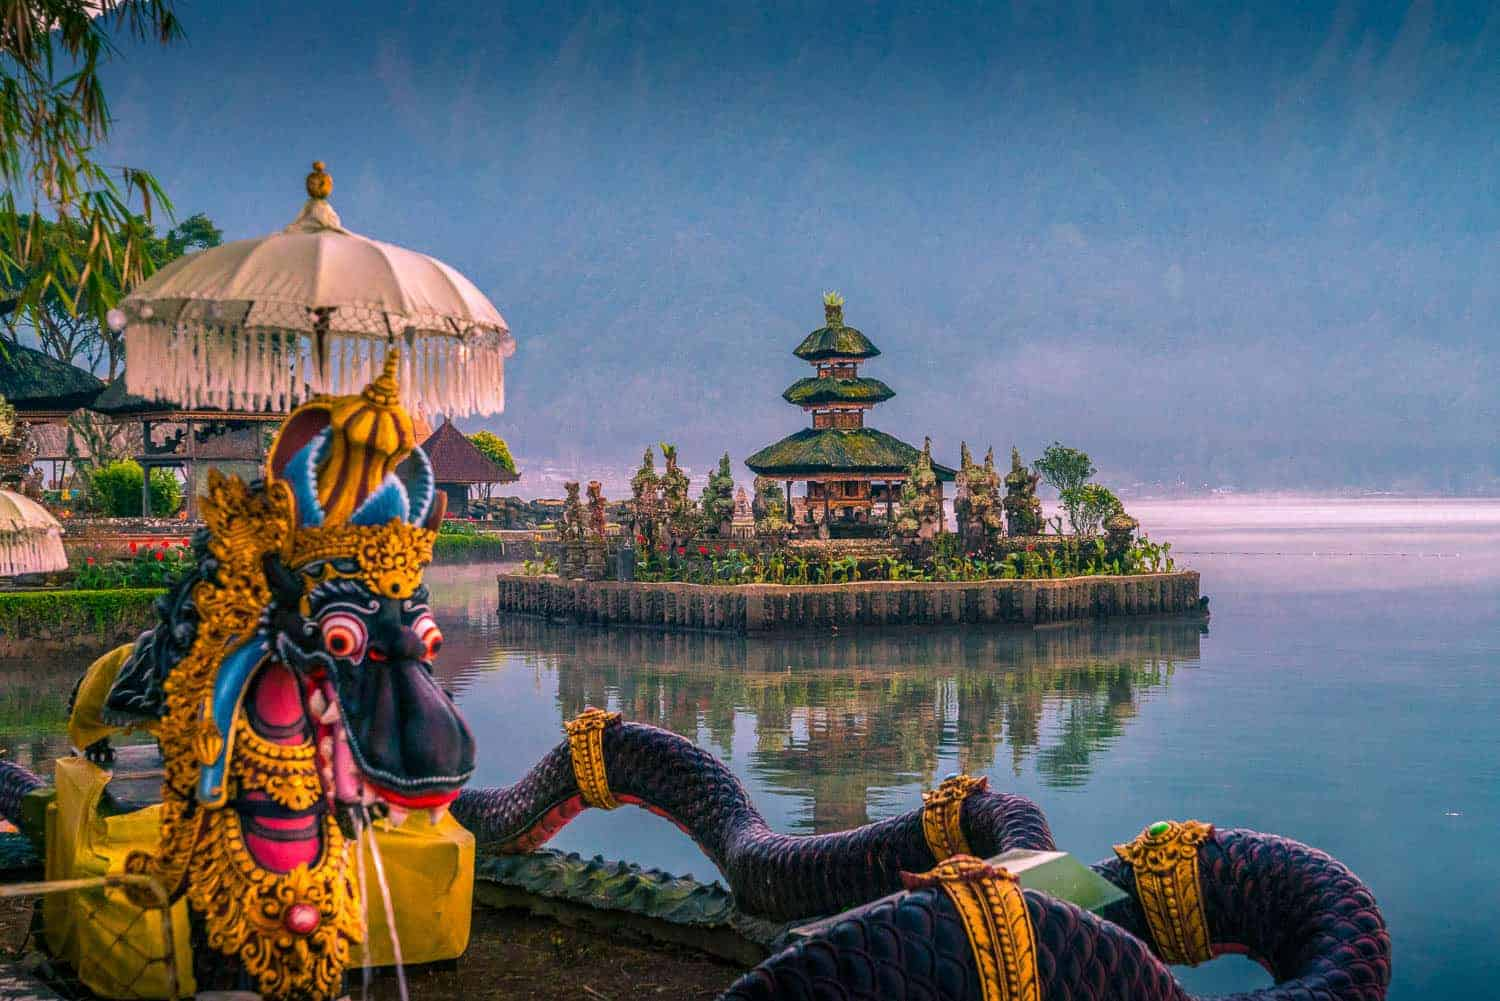 Ulun Danu Beratan in lake in Bedugul Indonesia. .Colorful statue in foreground